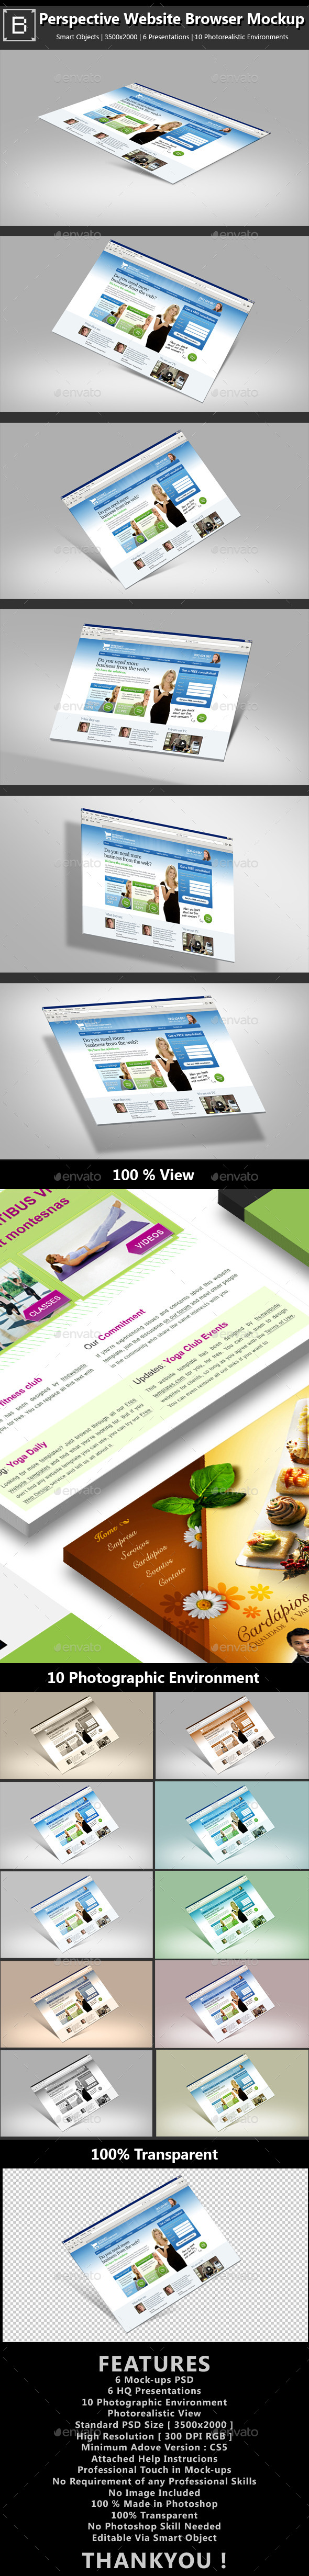 GraphicRiver Perspective Web-browser Screen Mockup 8828209